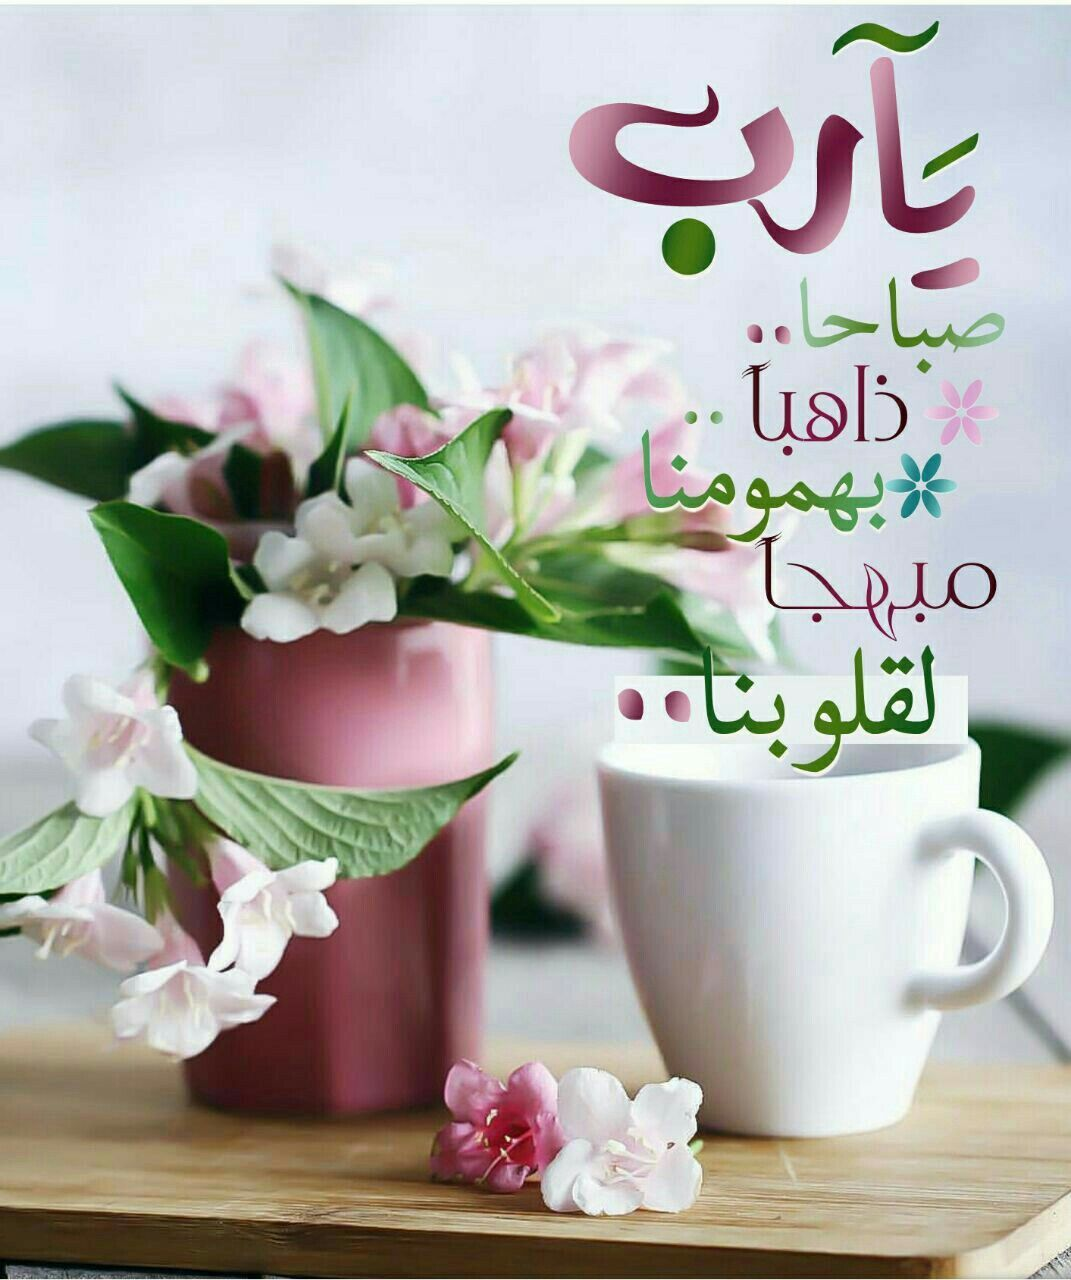 Pin By Youssef Jheir On صباح ومسا Beautiful Morning Messages Morning Greeting Morning Blessings